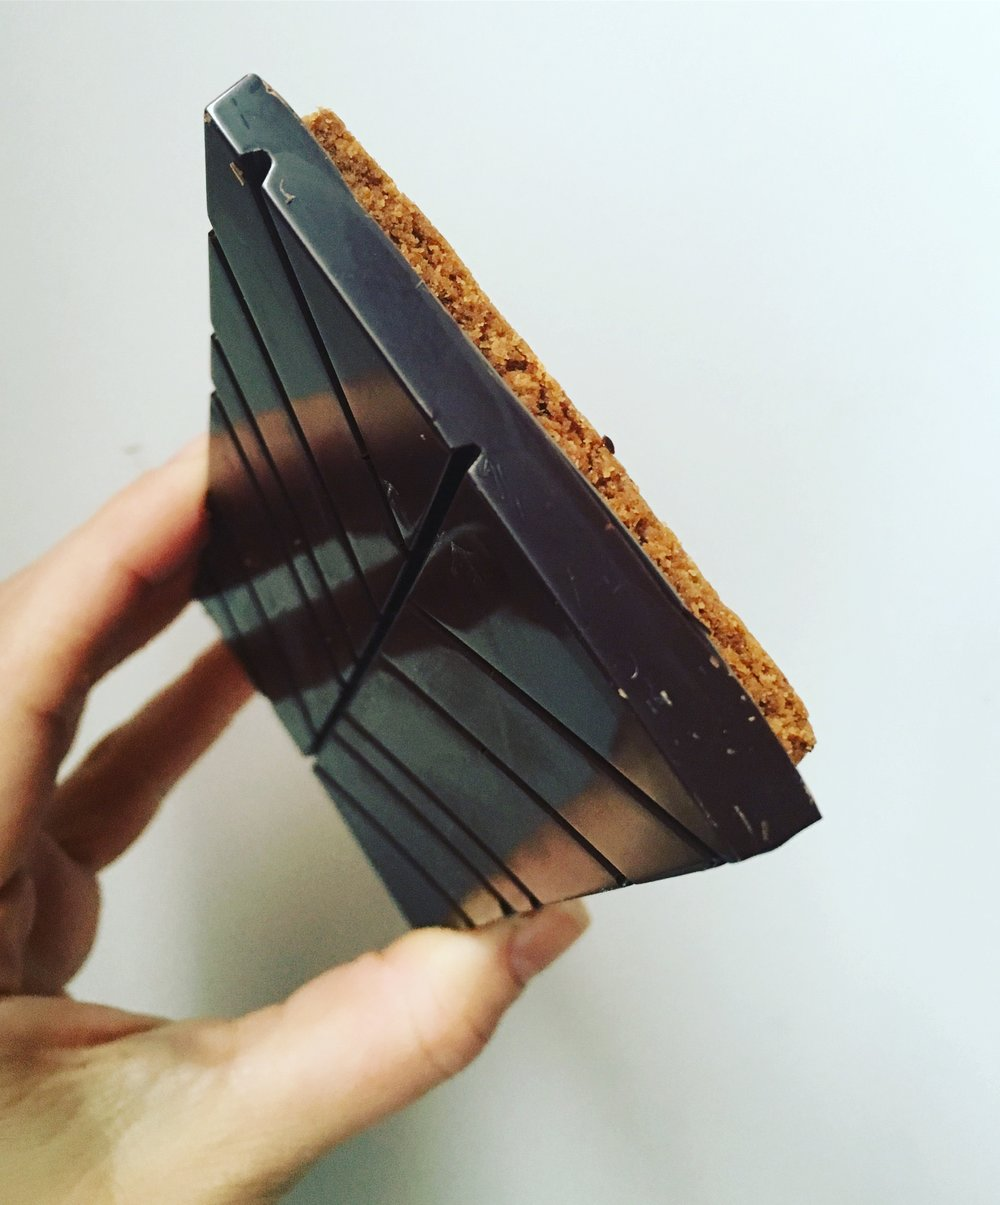 chocolategrahambar.jpeg